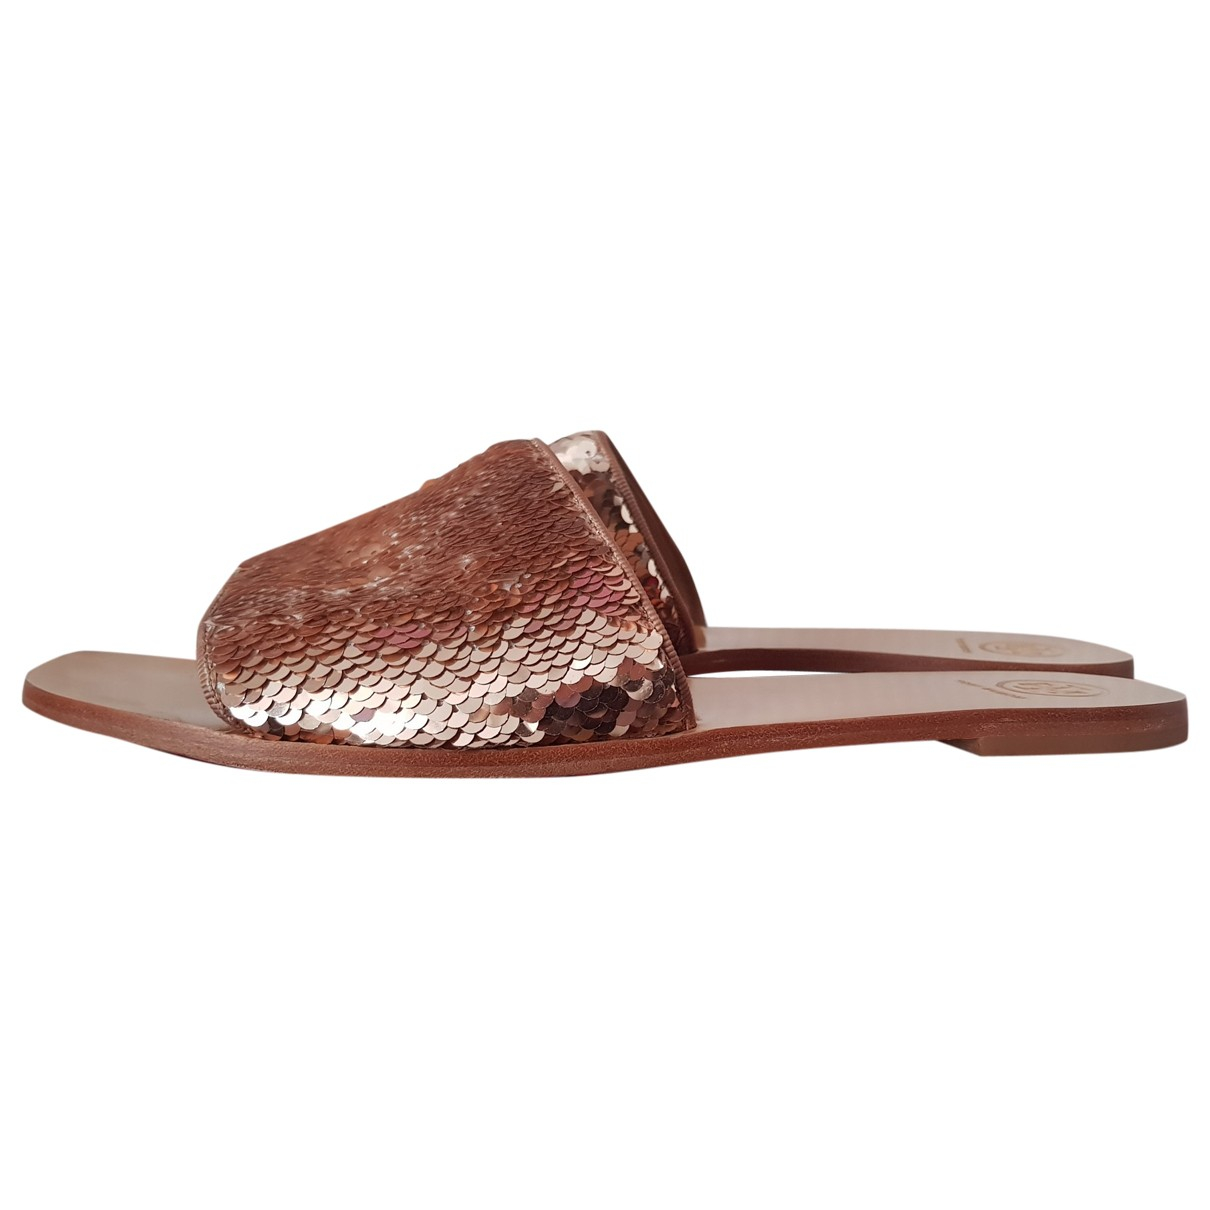 Tory Burch \N Gold Glitter Sandals for Women 10 US